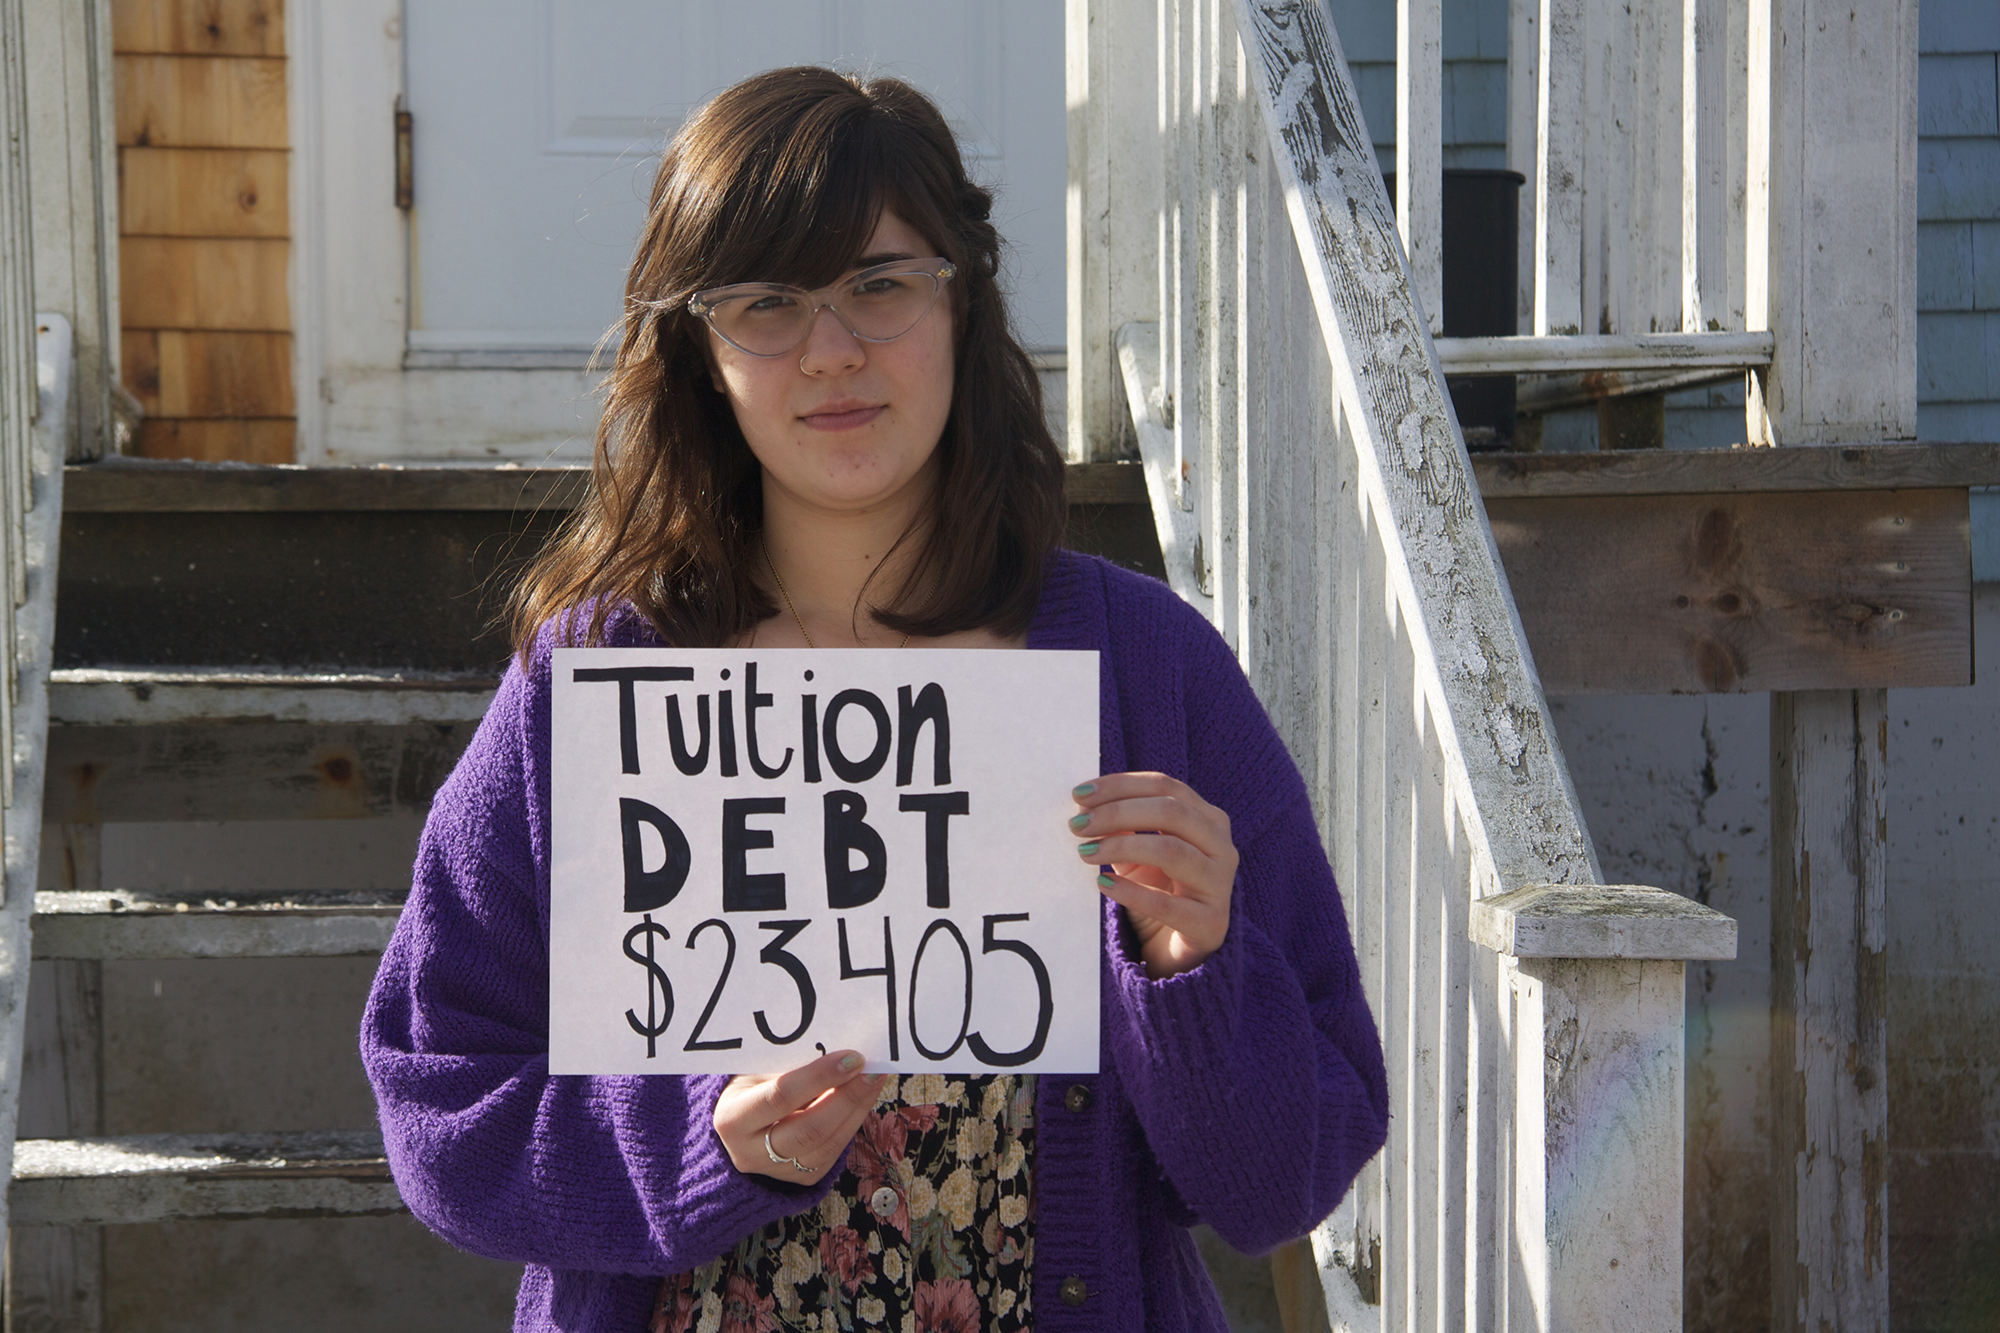 Tuition debt is a problem. Will eradicating interest from student loans help? (photo by Adelevan Wyk)